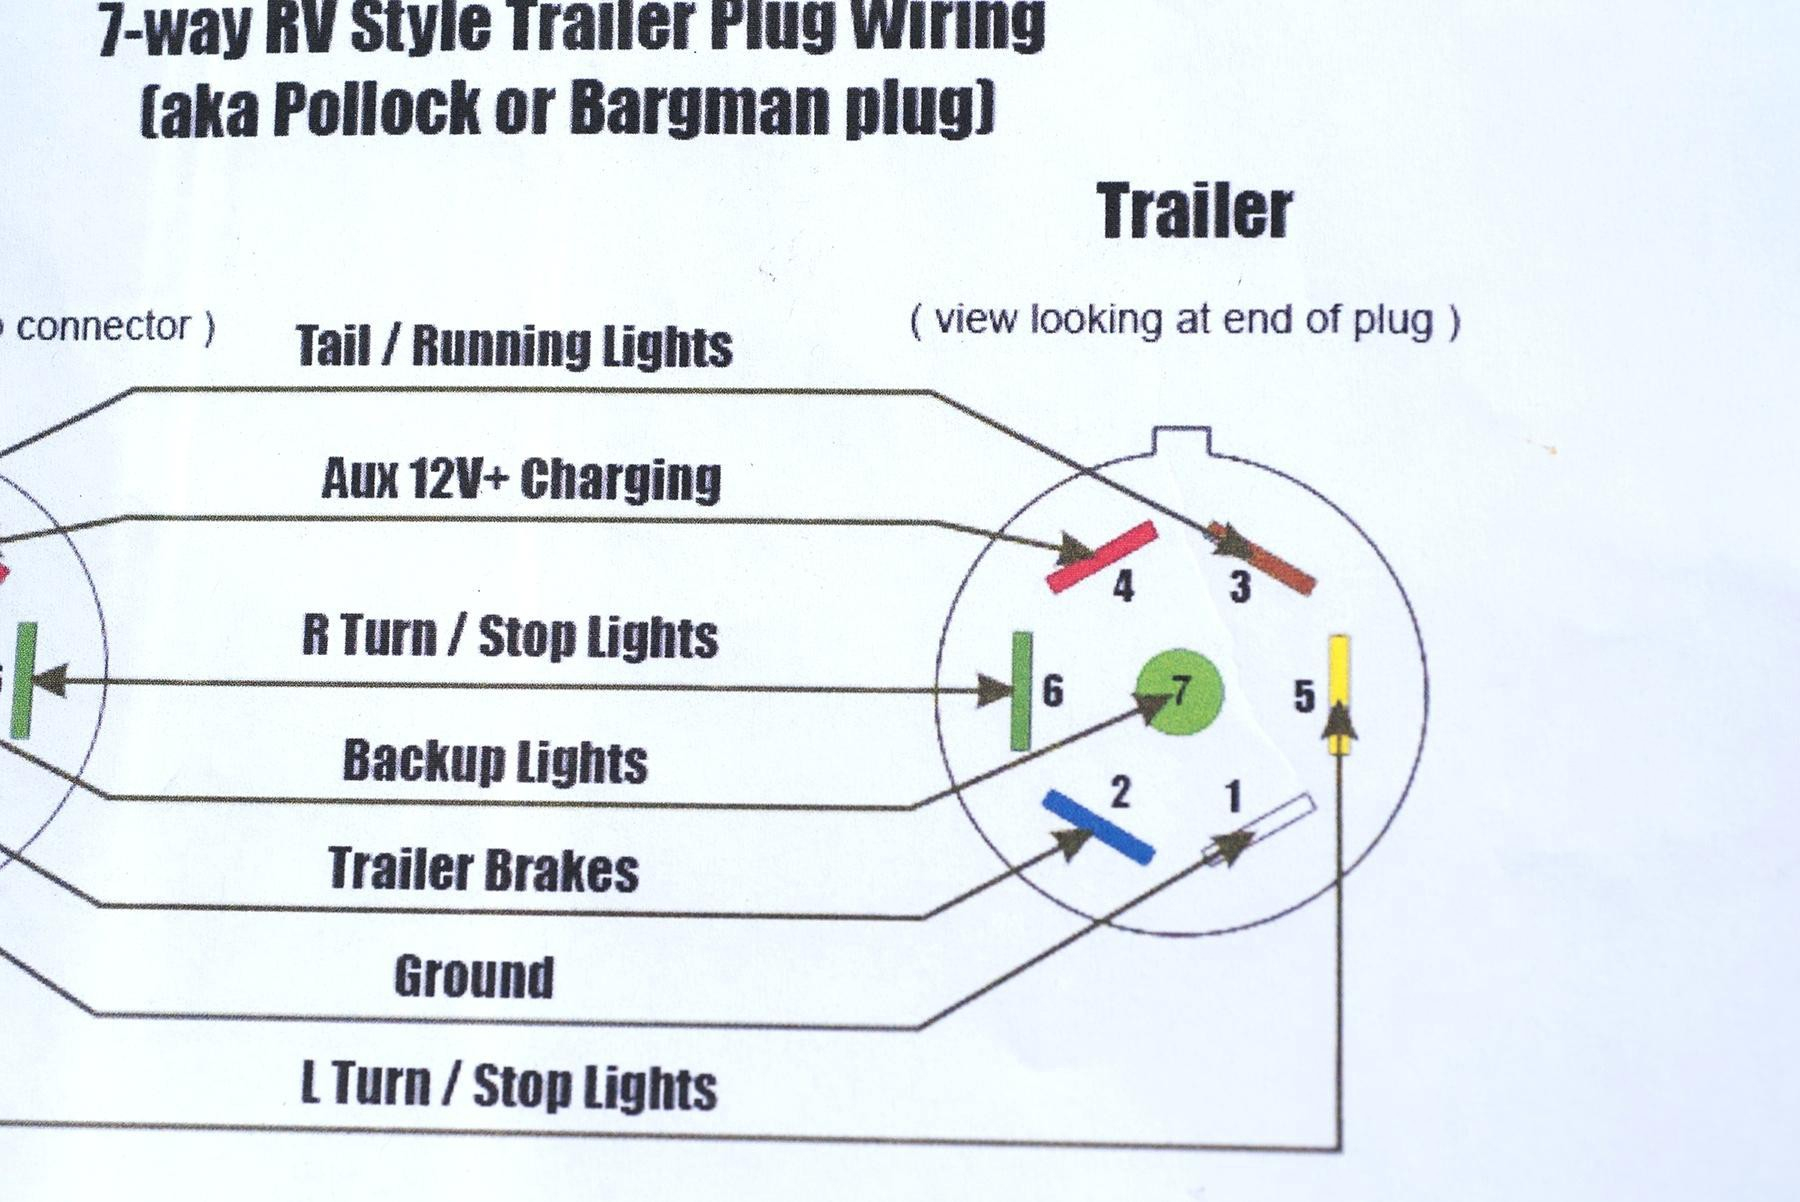 4 Pin Wiring Diagram Blurts Me Best Of Trailer - Roc-Grp - 4 Prong Generator Plug Wiring Diagram